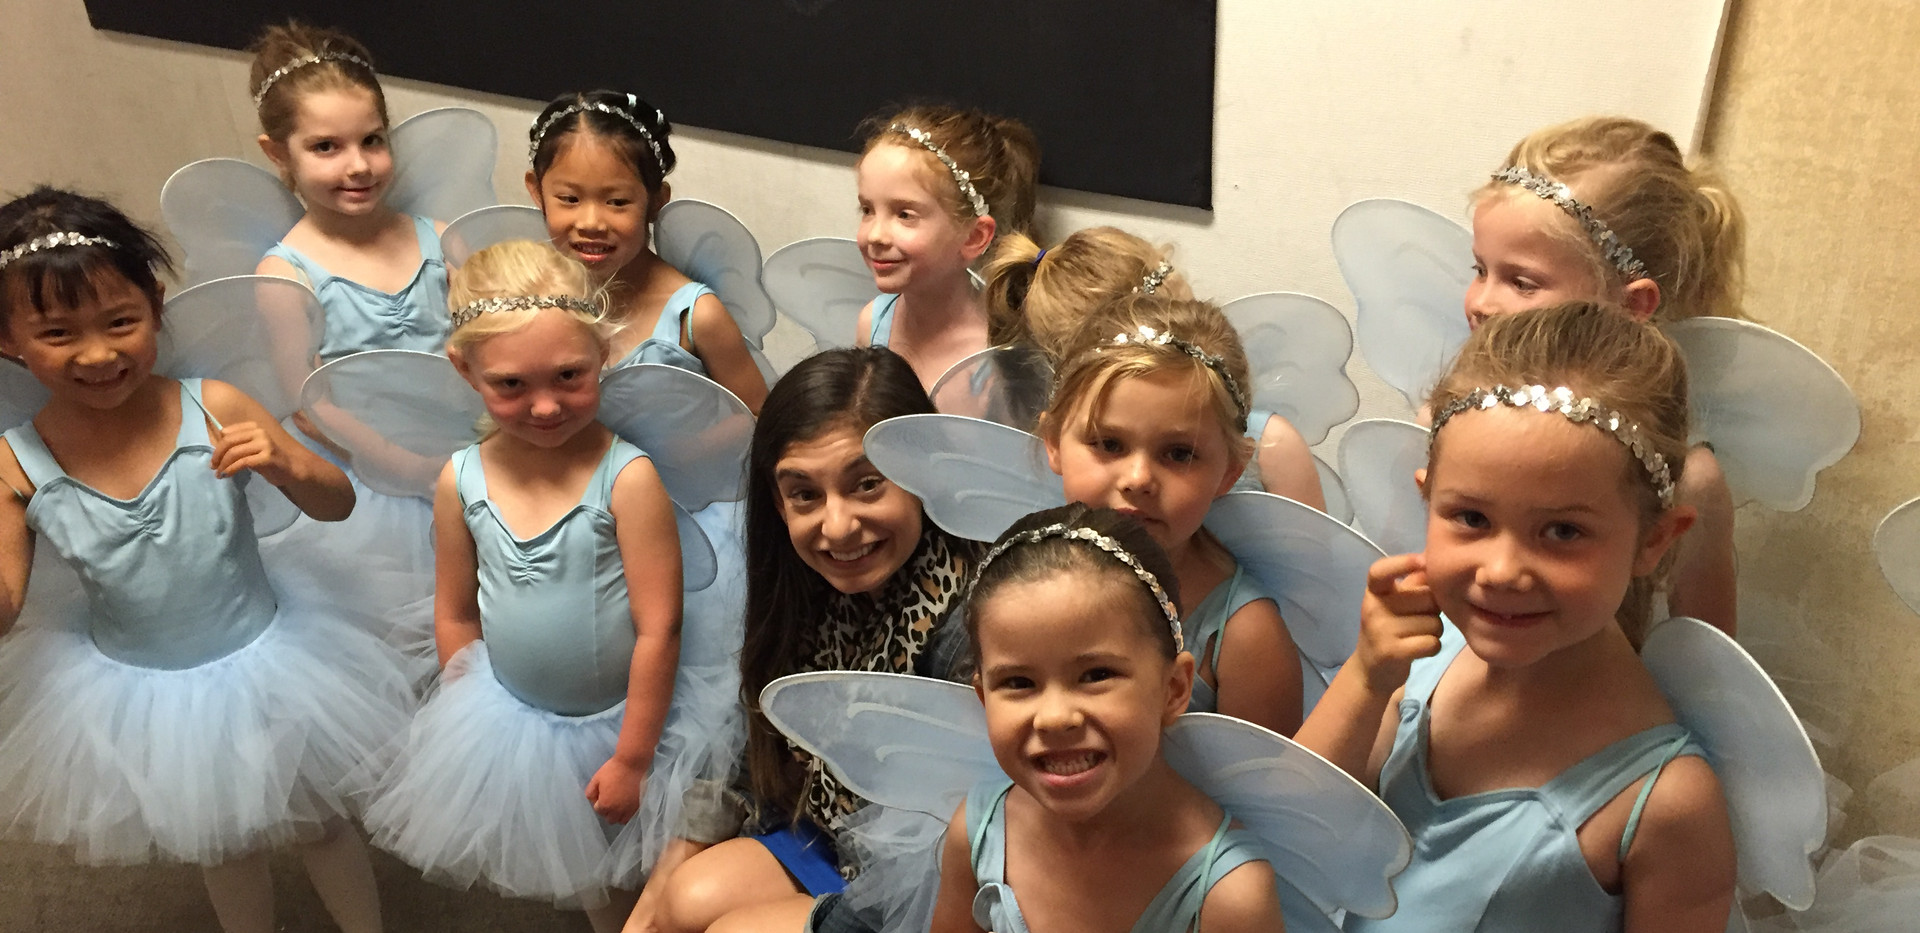 Backstage Fairies